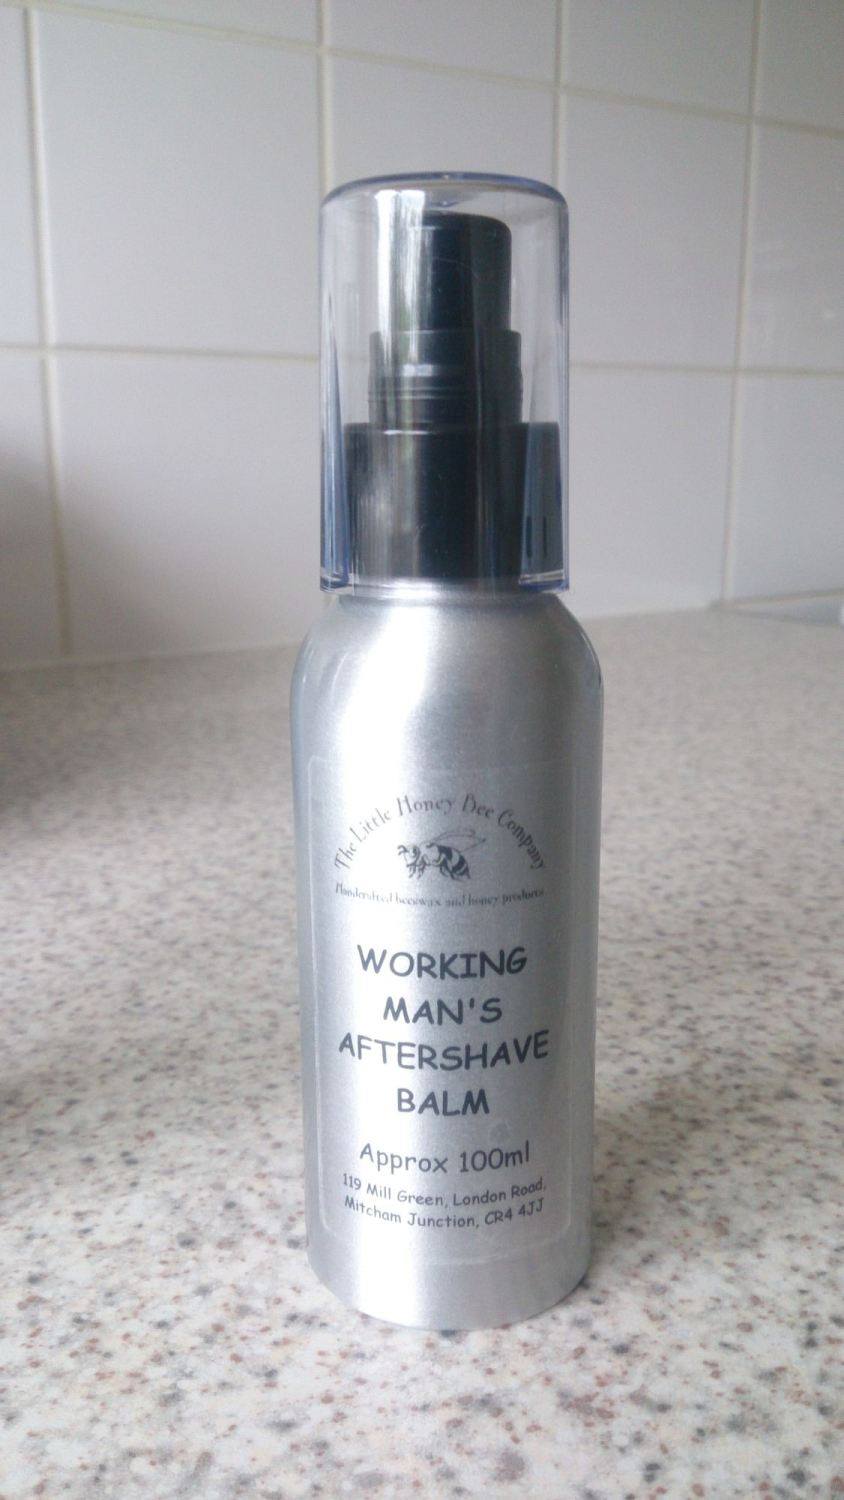 Working Man After Shave Balm